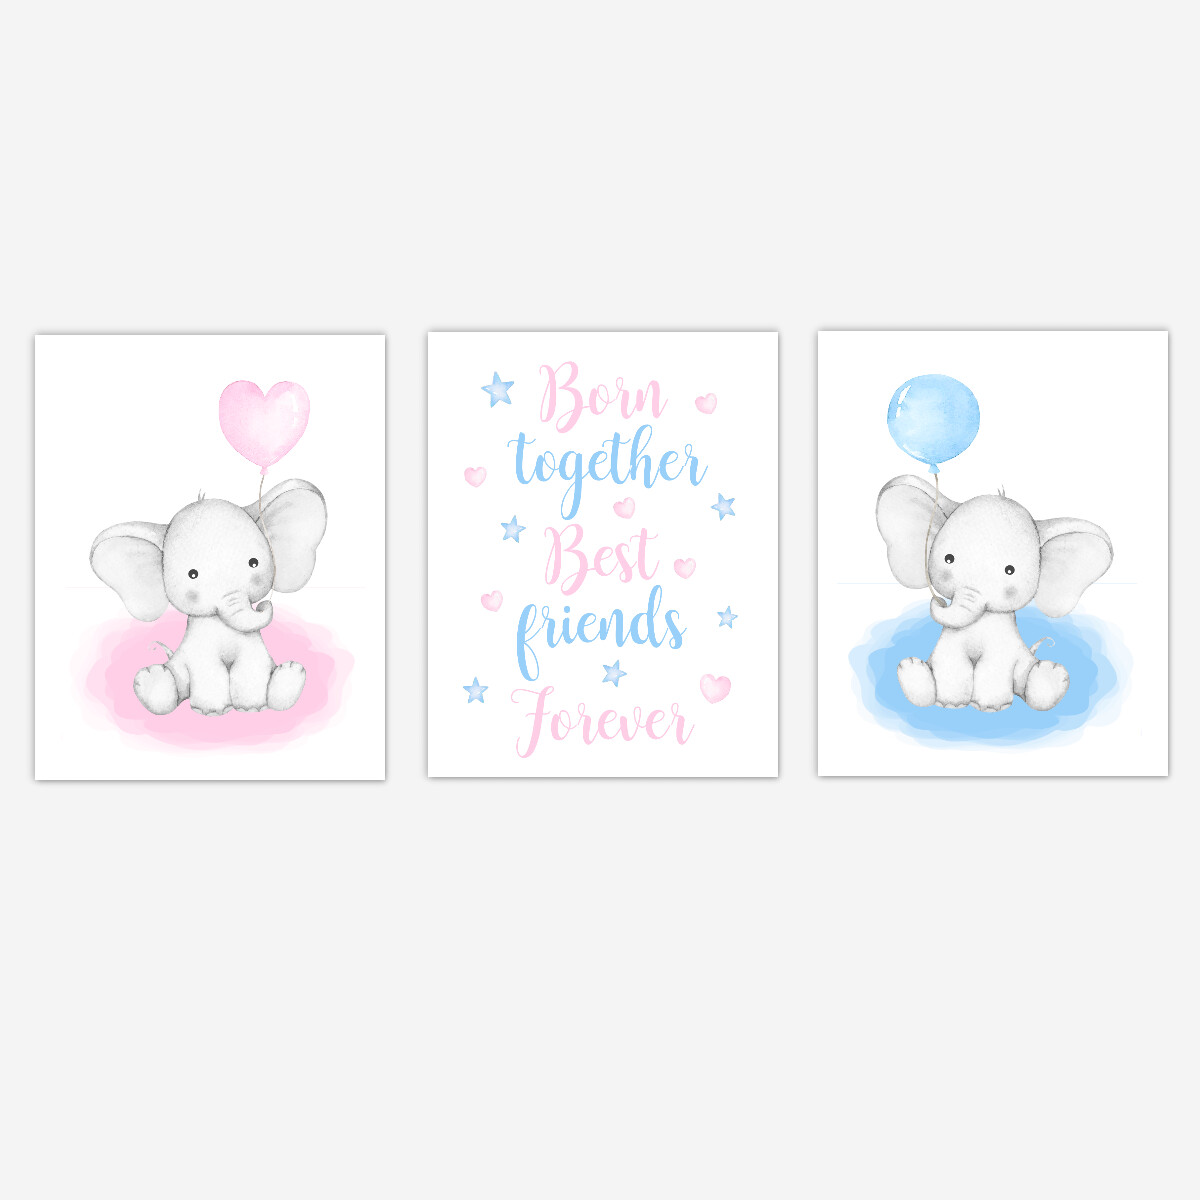 Twins Watercolor Blue Pink Elephants Baby Boy Girl Nursery Wall Art 3 UNFRAMED PRINTS or CANVAS